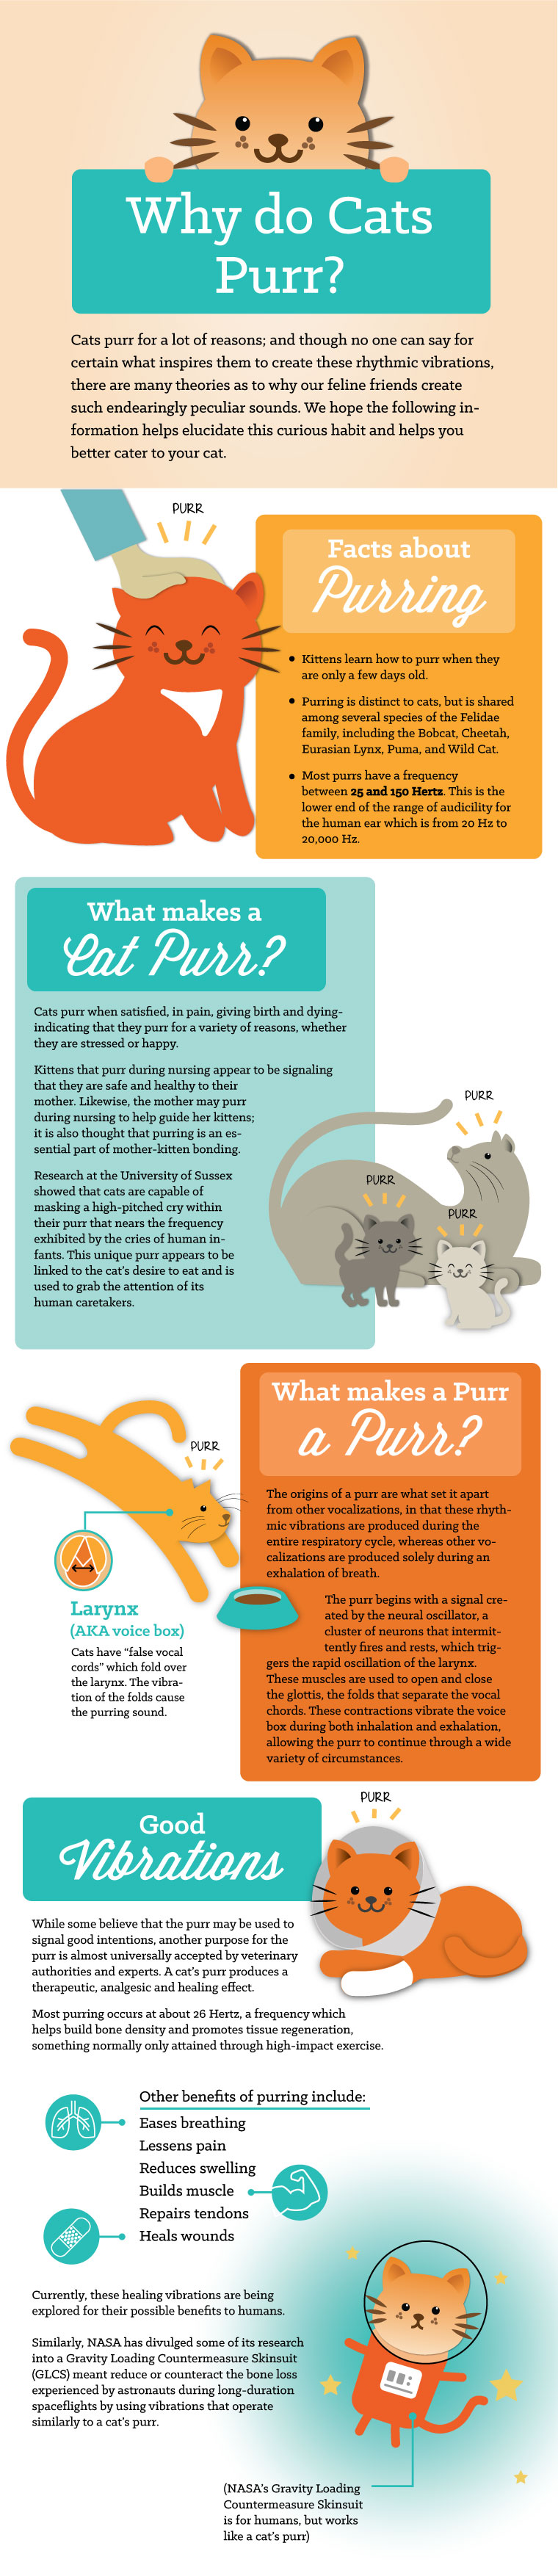 Why Do Cats Purr? An EntirelyPets Infographic by Rachel Martin.